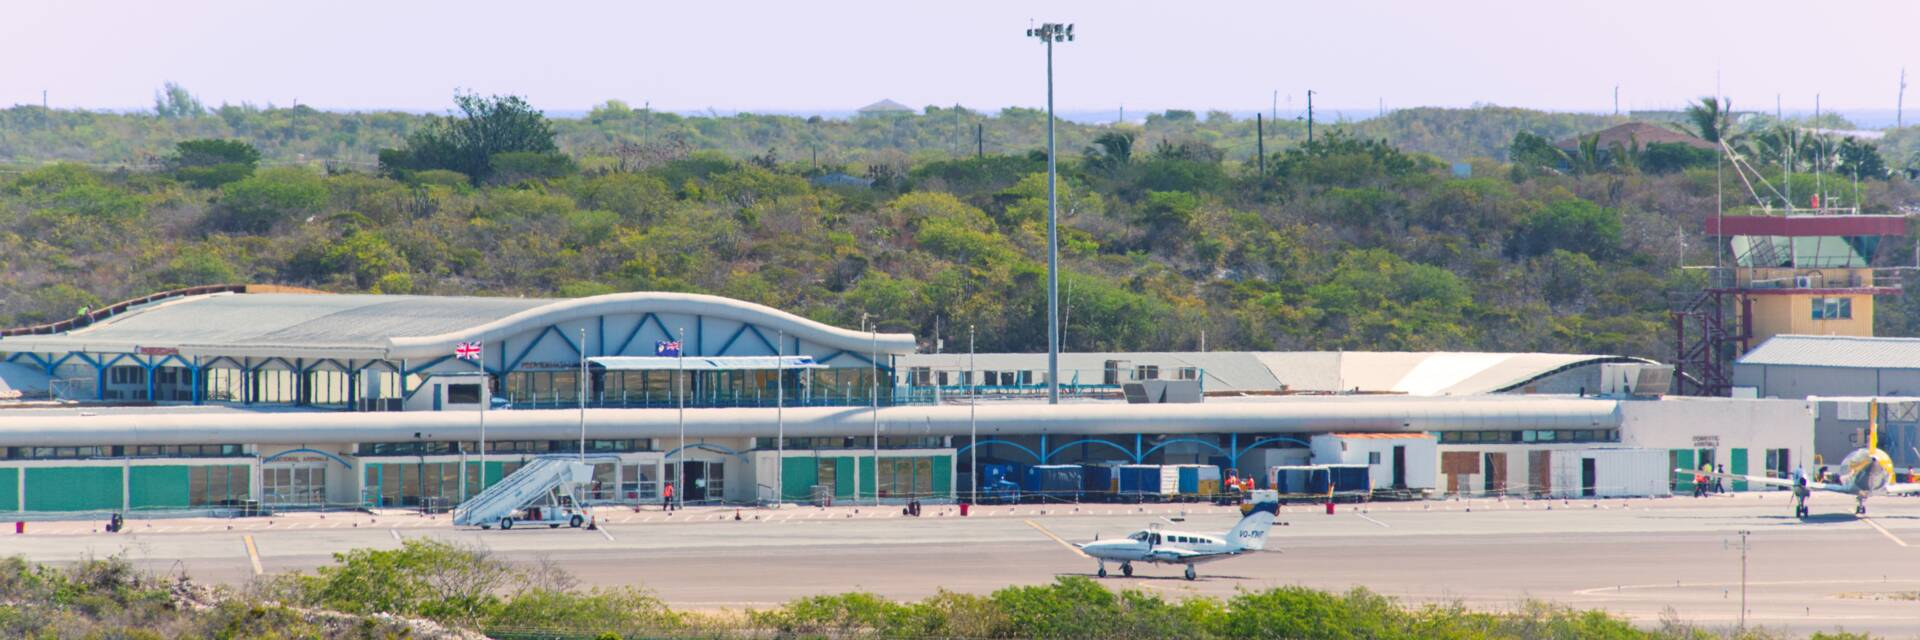 Providenciales Airport (PLS) | Visit Turks and Caicos Islands